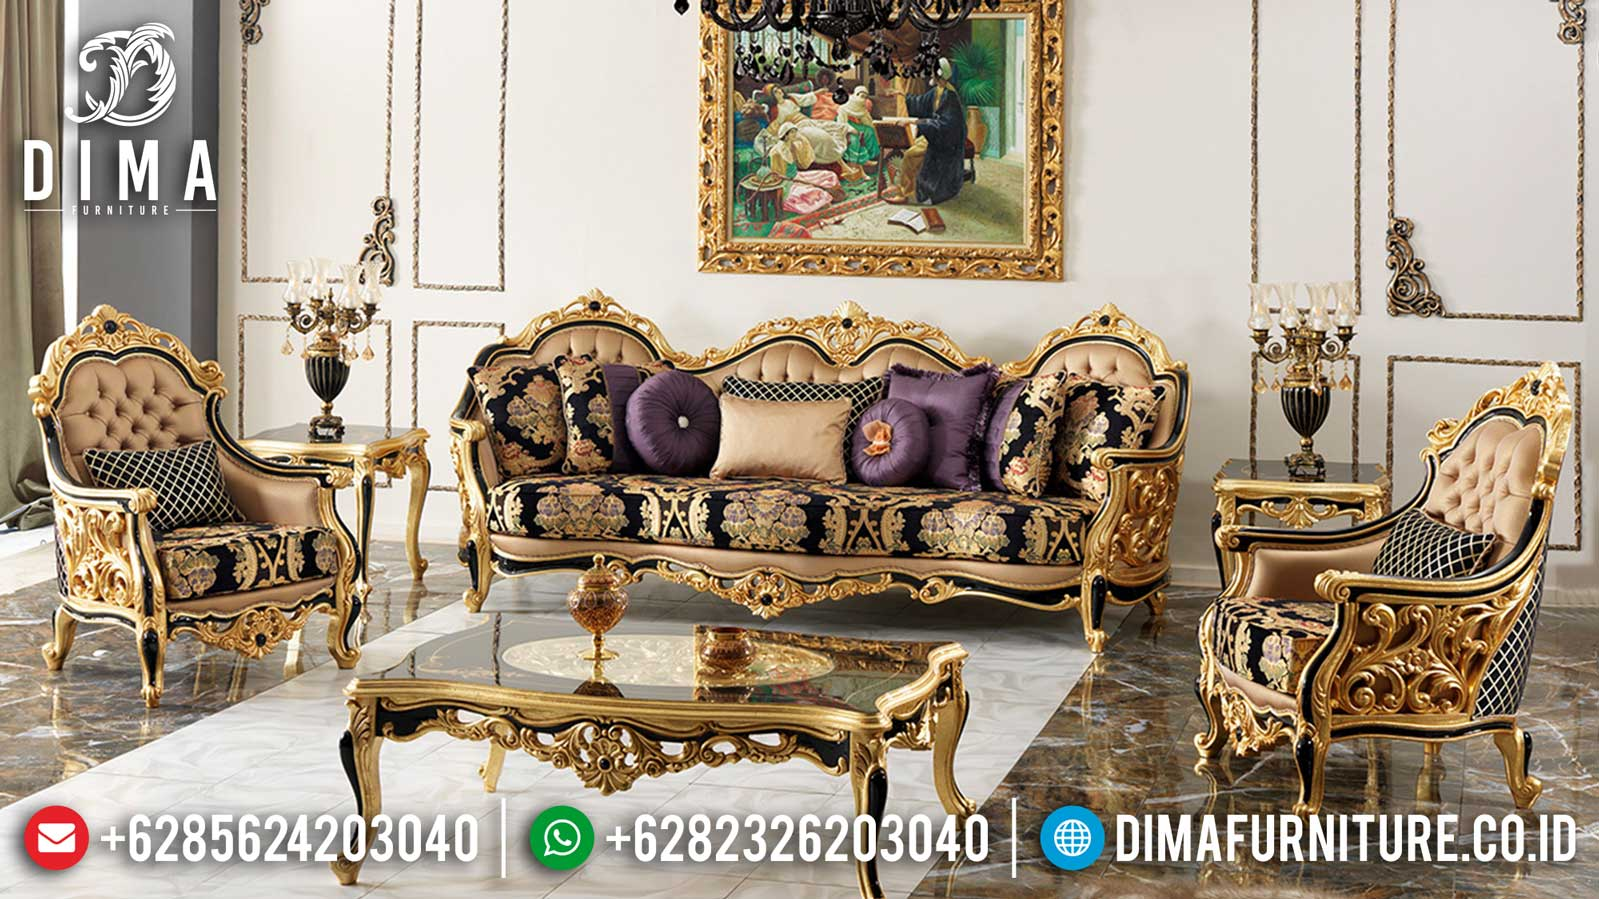 Flash Sale Sofa Tamu Mewah Jepara Golden Sunrise Luxury Carving Great Quality TTJ-1263